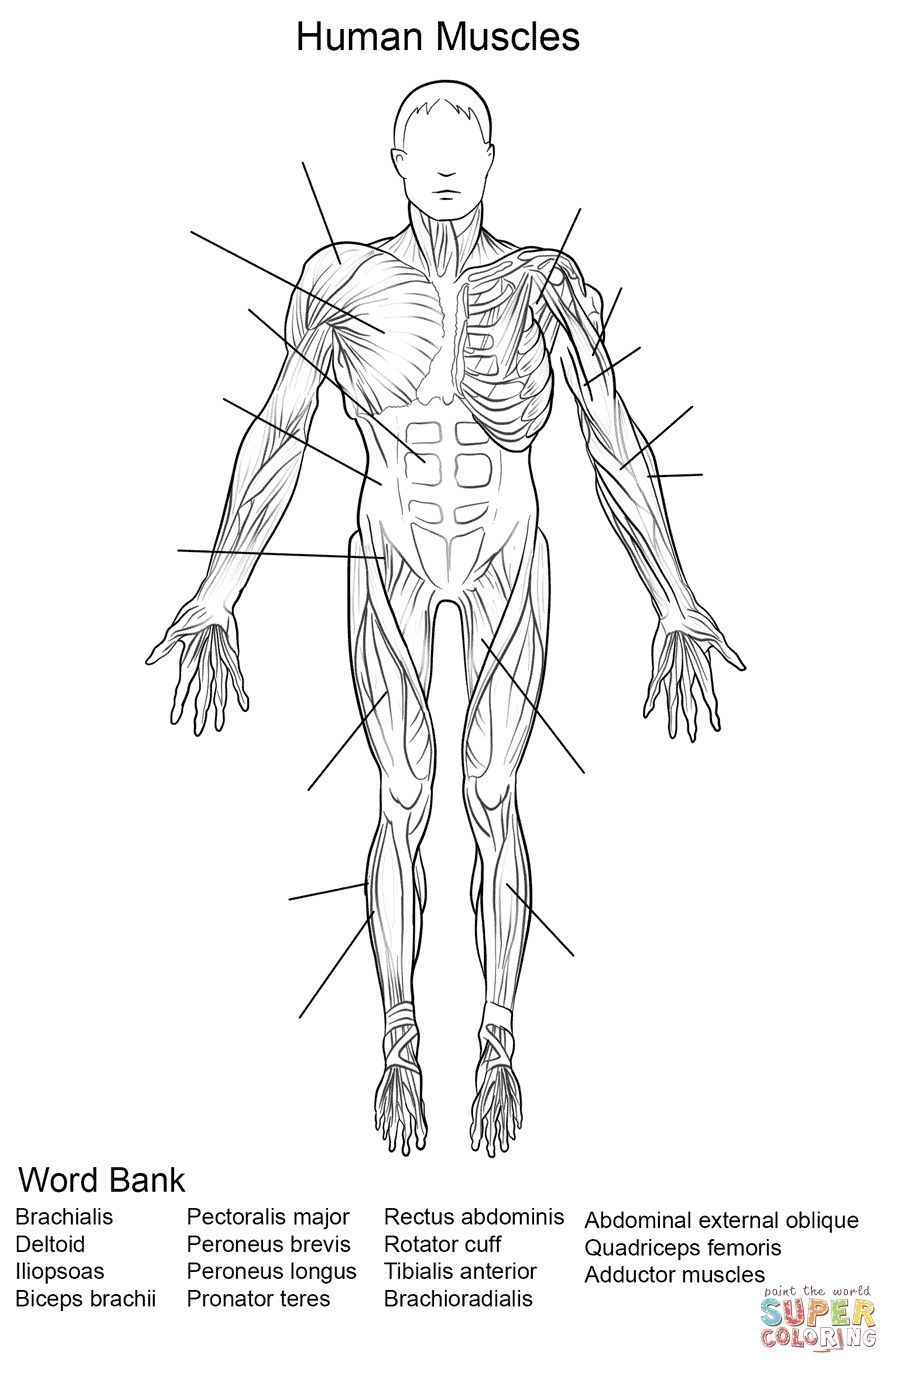 Muscle Coloring Pages Easy To Color Anatomy Coloring Book Coloring Pages Words Coloring Book